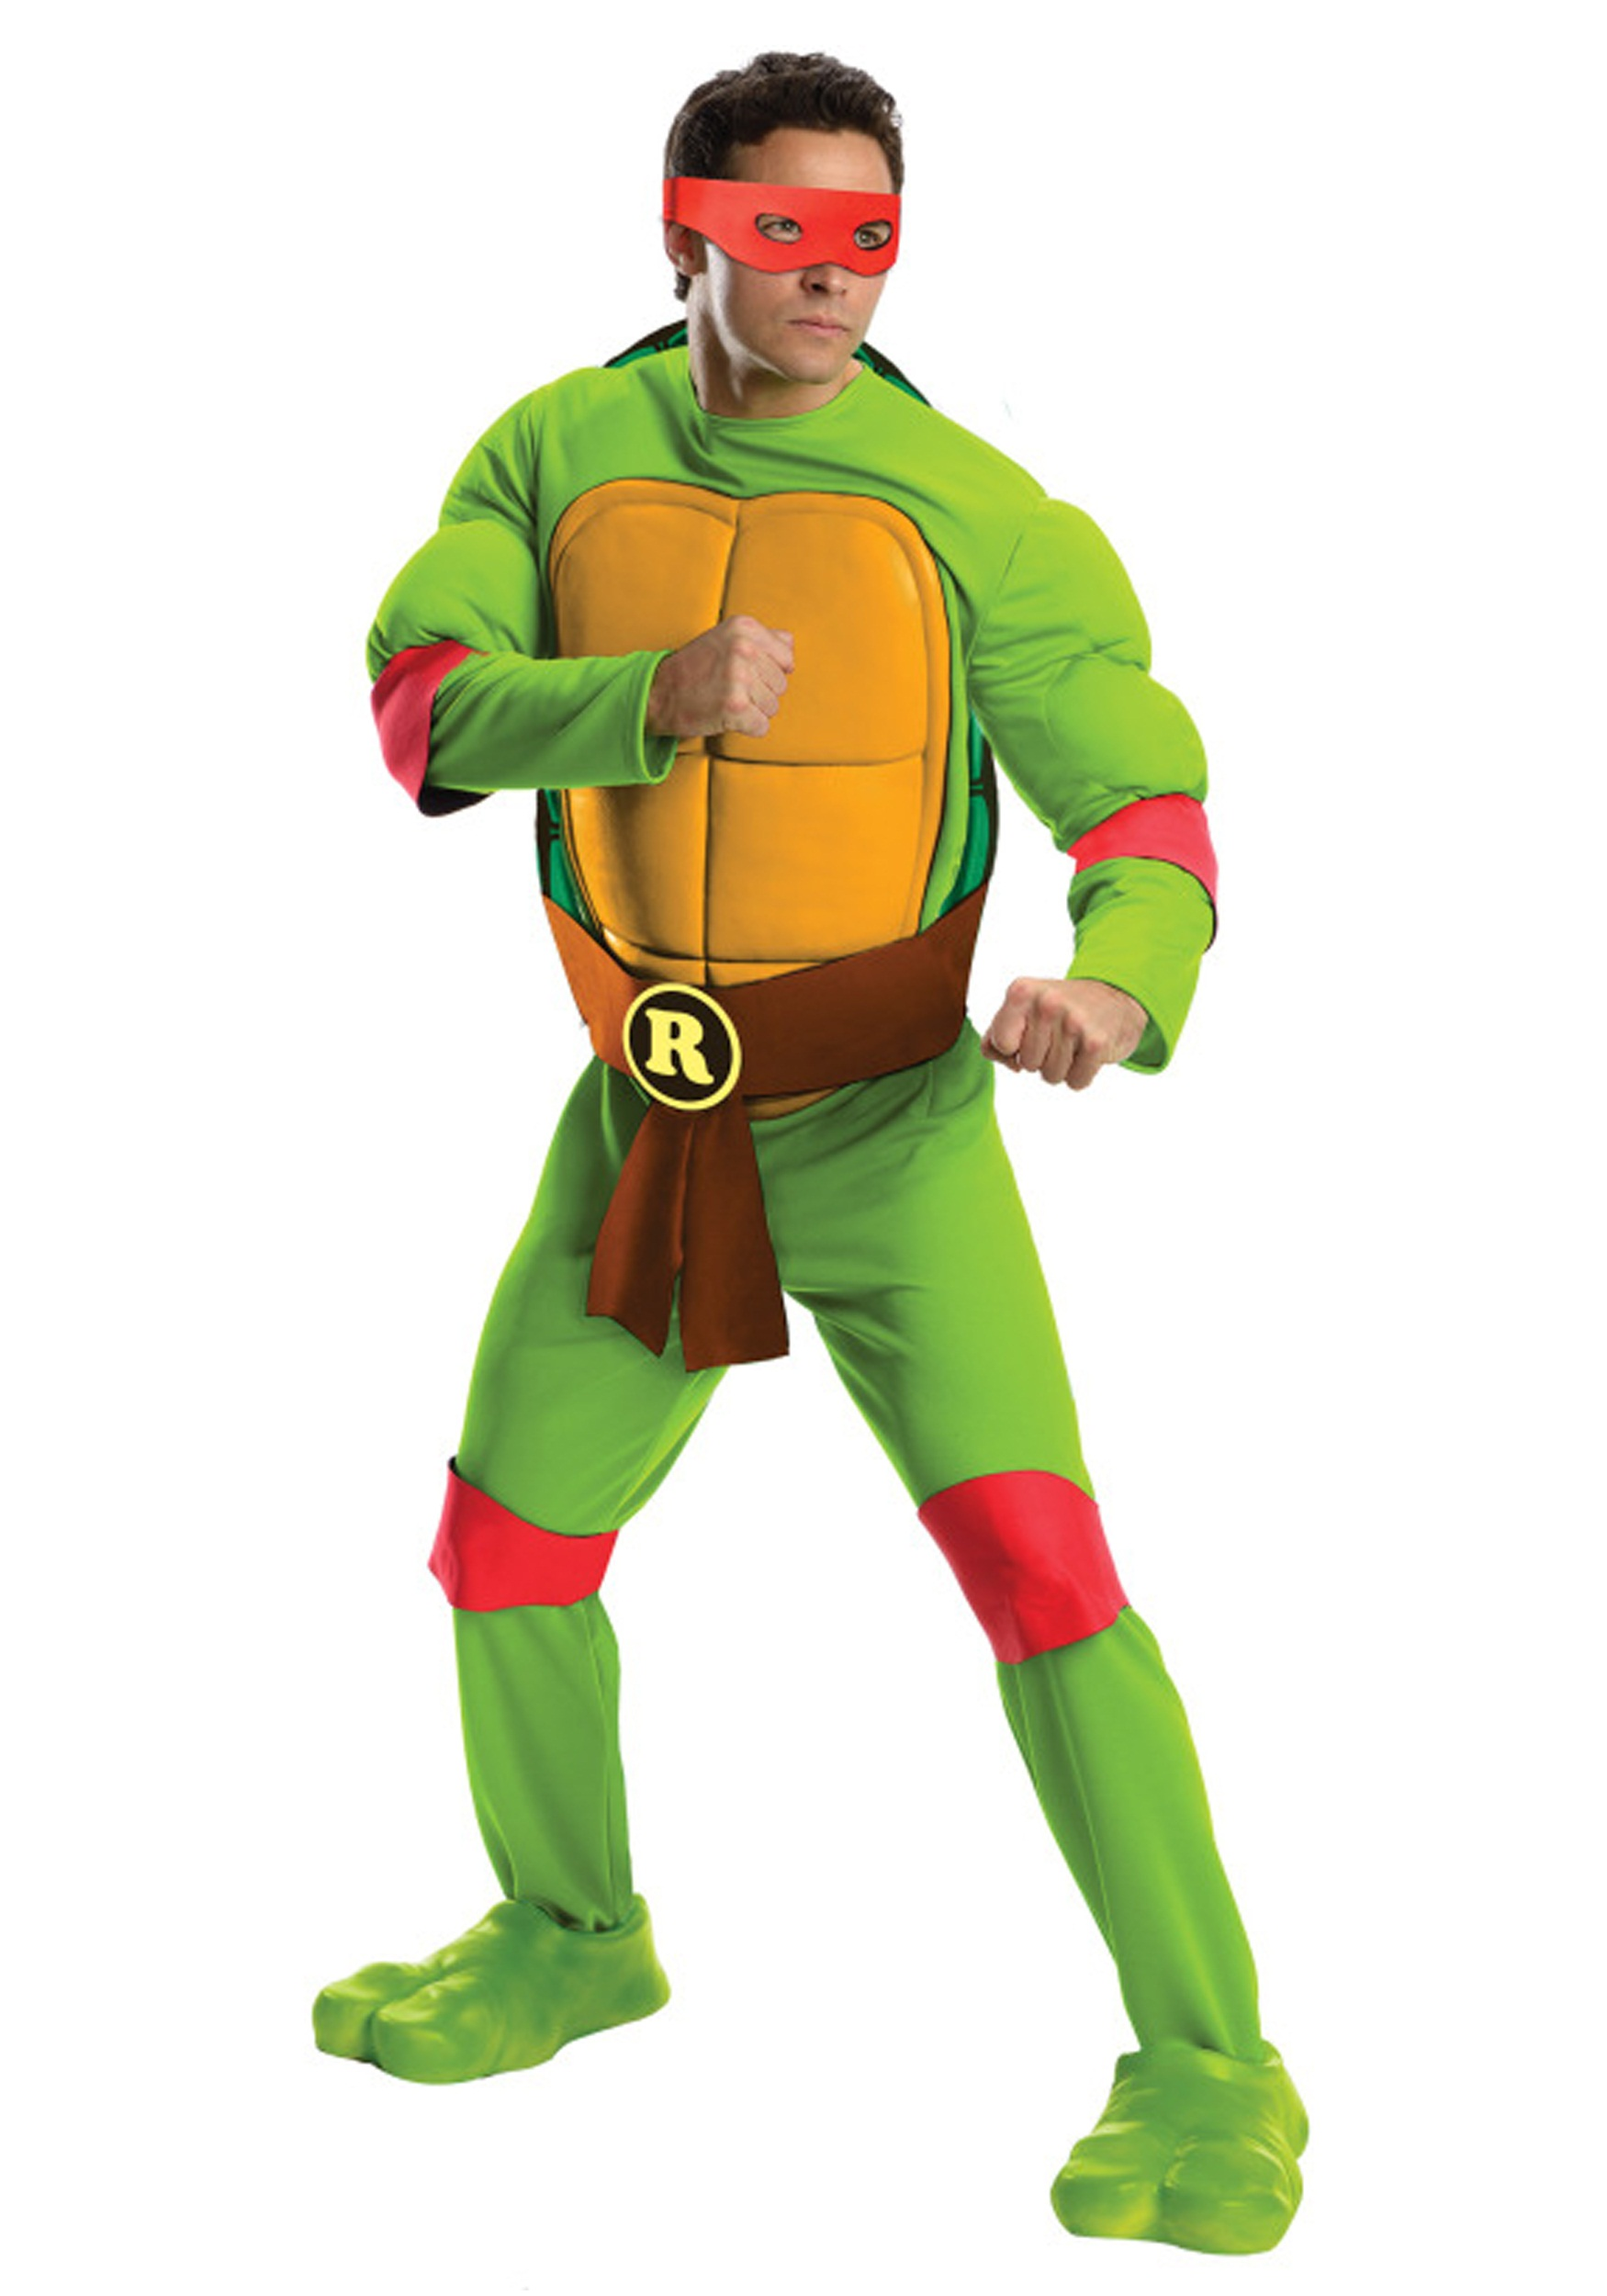 Deluxe TMNT Raphael Menu0027s Costume  sc 1 st  Fun.com & Deluxe TMNT Raphael Costume for Men